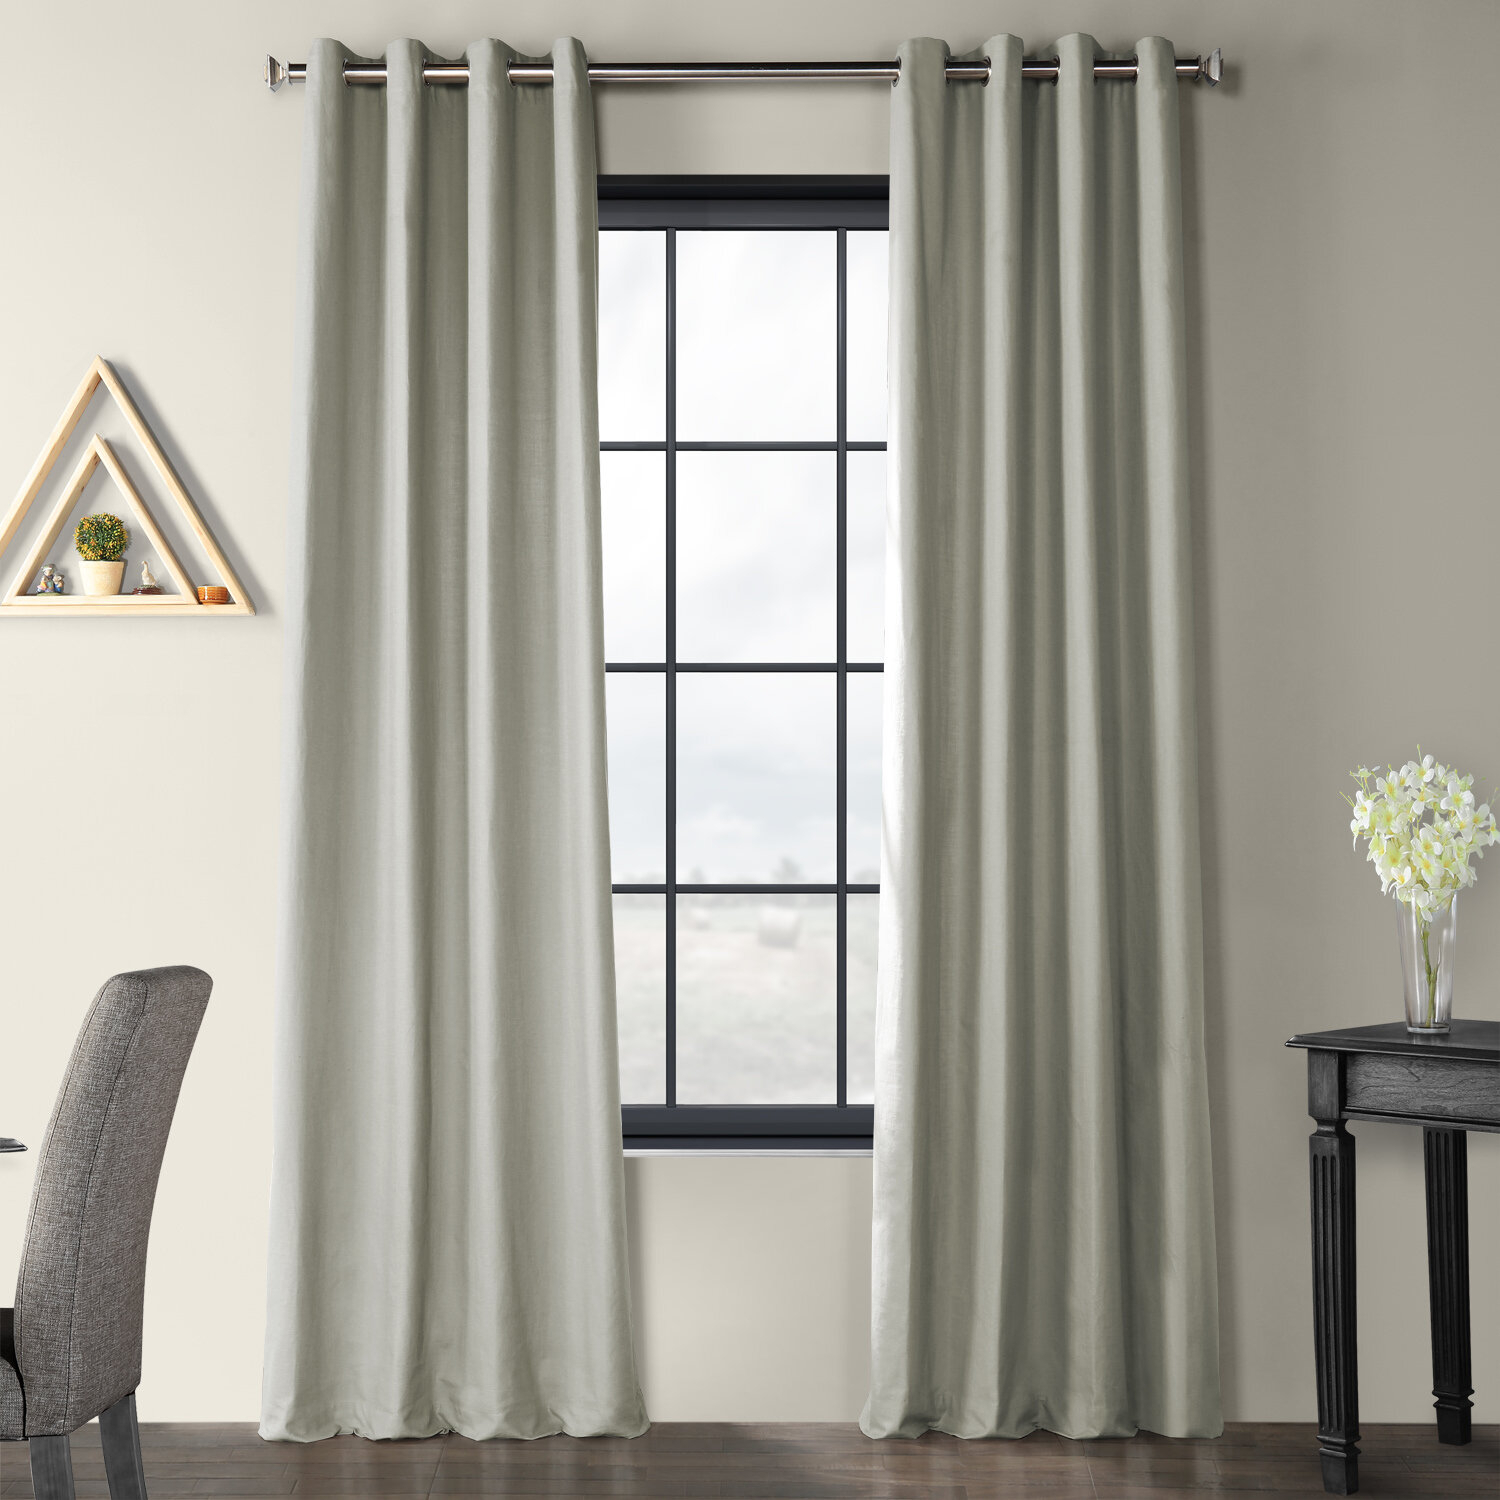 Solid Country Cotton Linen Weave Grommet Indoor Single Curtain Pane Regarding Bark Weave Solid Cotton Curtains (View 17 of 20)